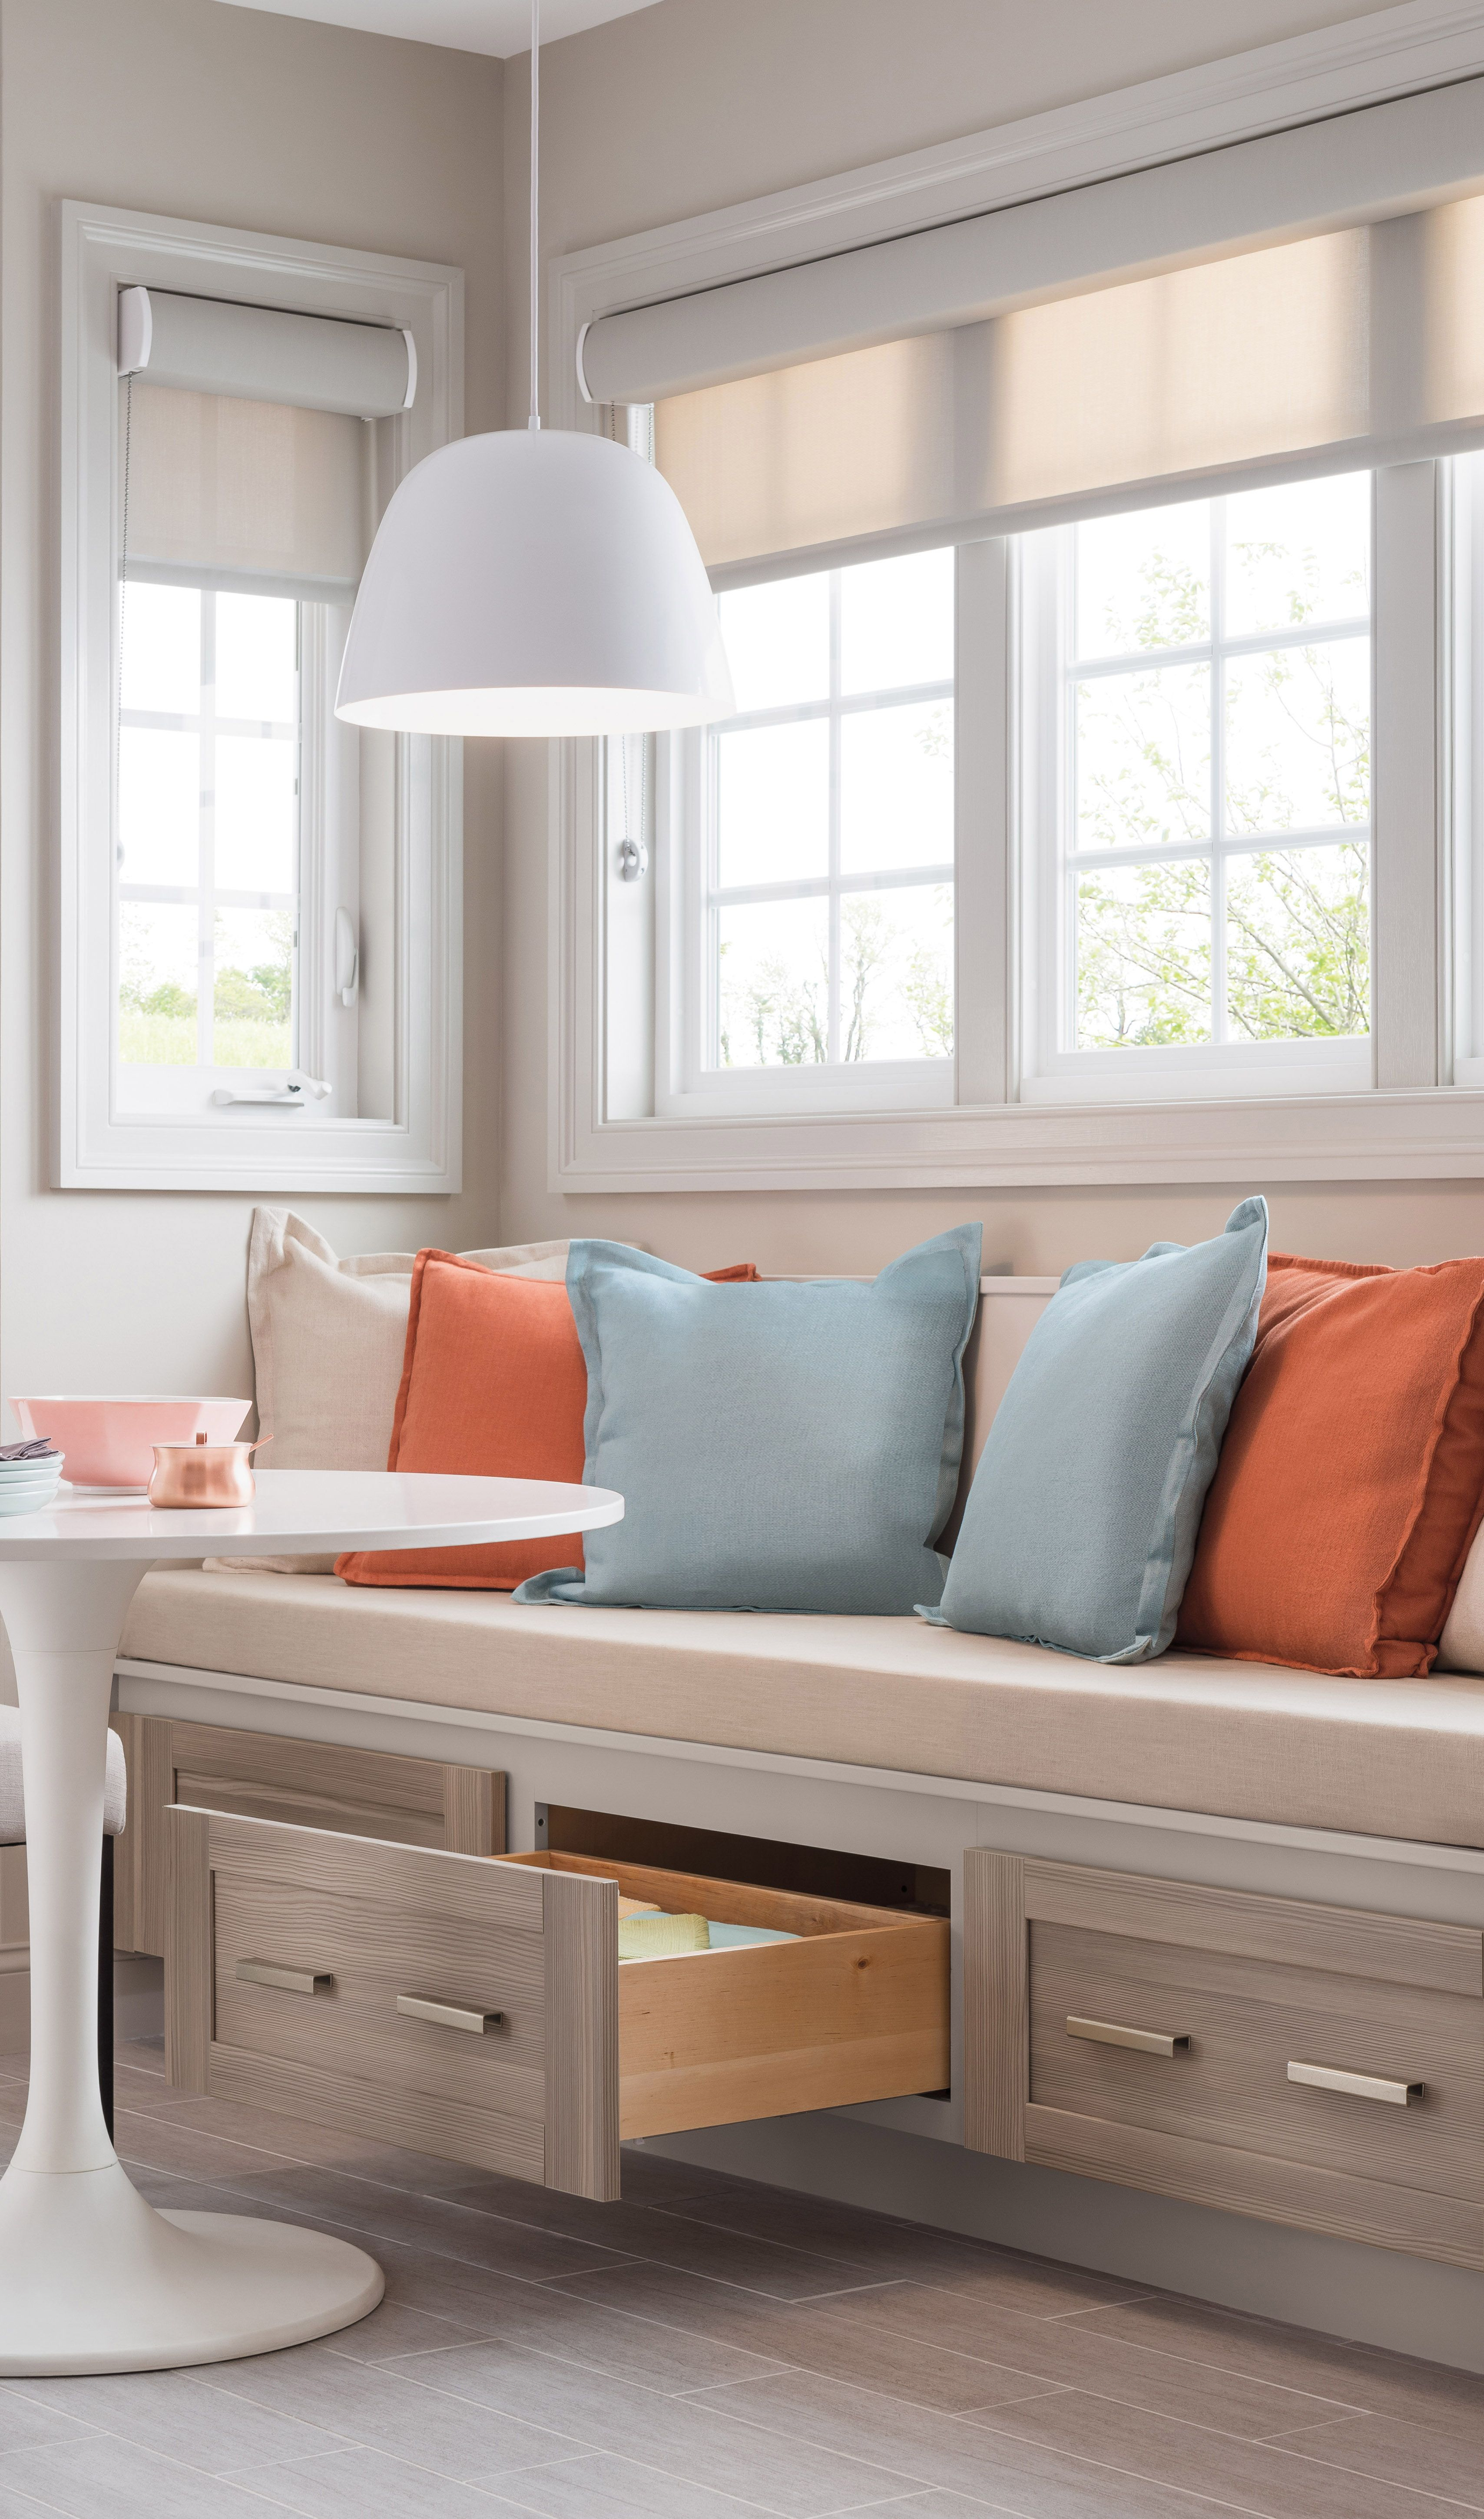 Create A Breakfast Nook With Kitchen Cabinetry It S Perfect For Small Spaces By Providing A Dining Room Small Banquette Seating In Kitchen Window Seat Kitchen